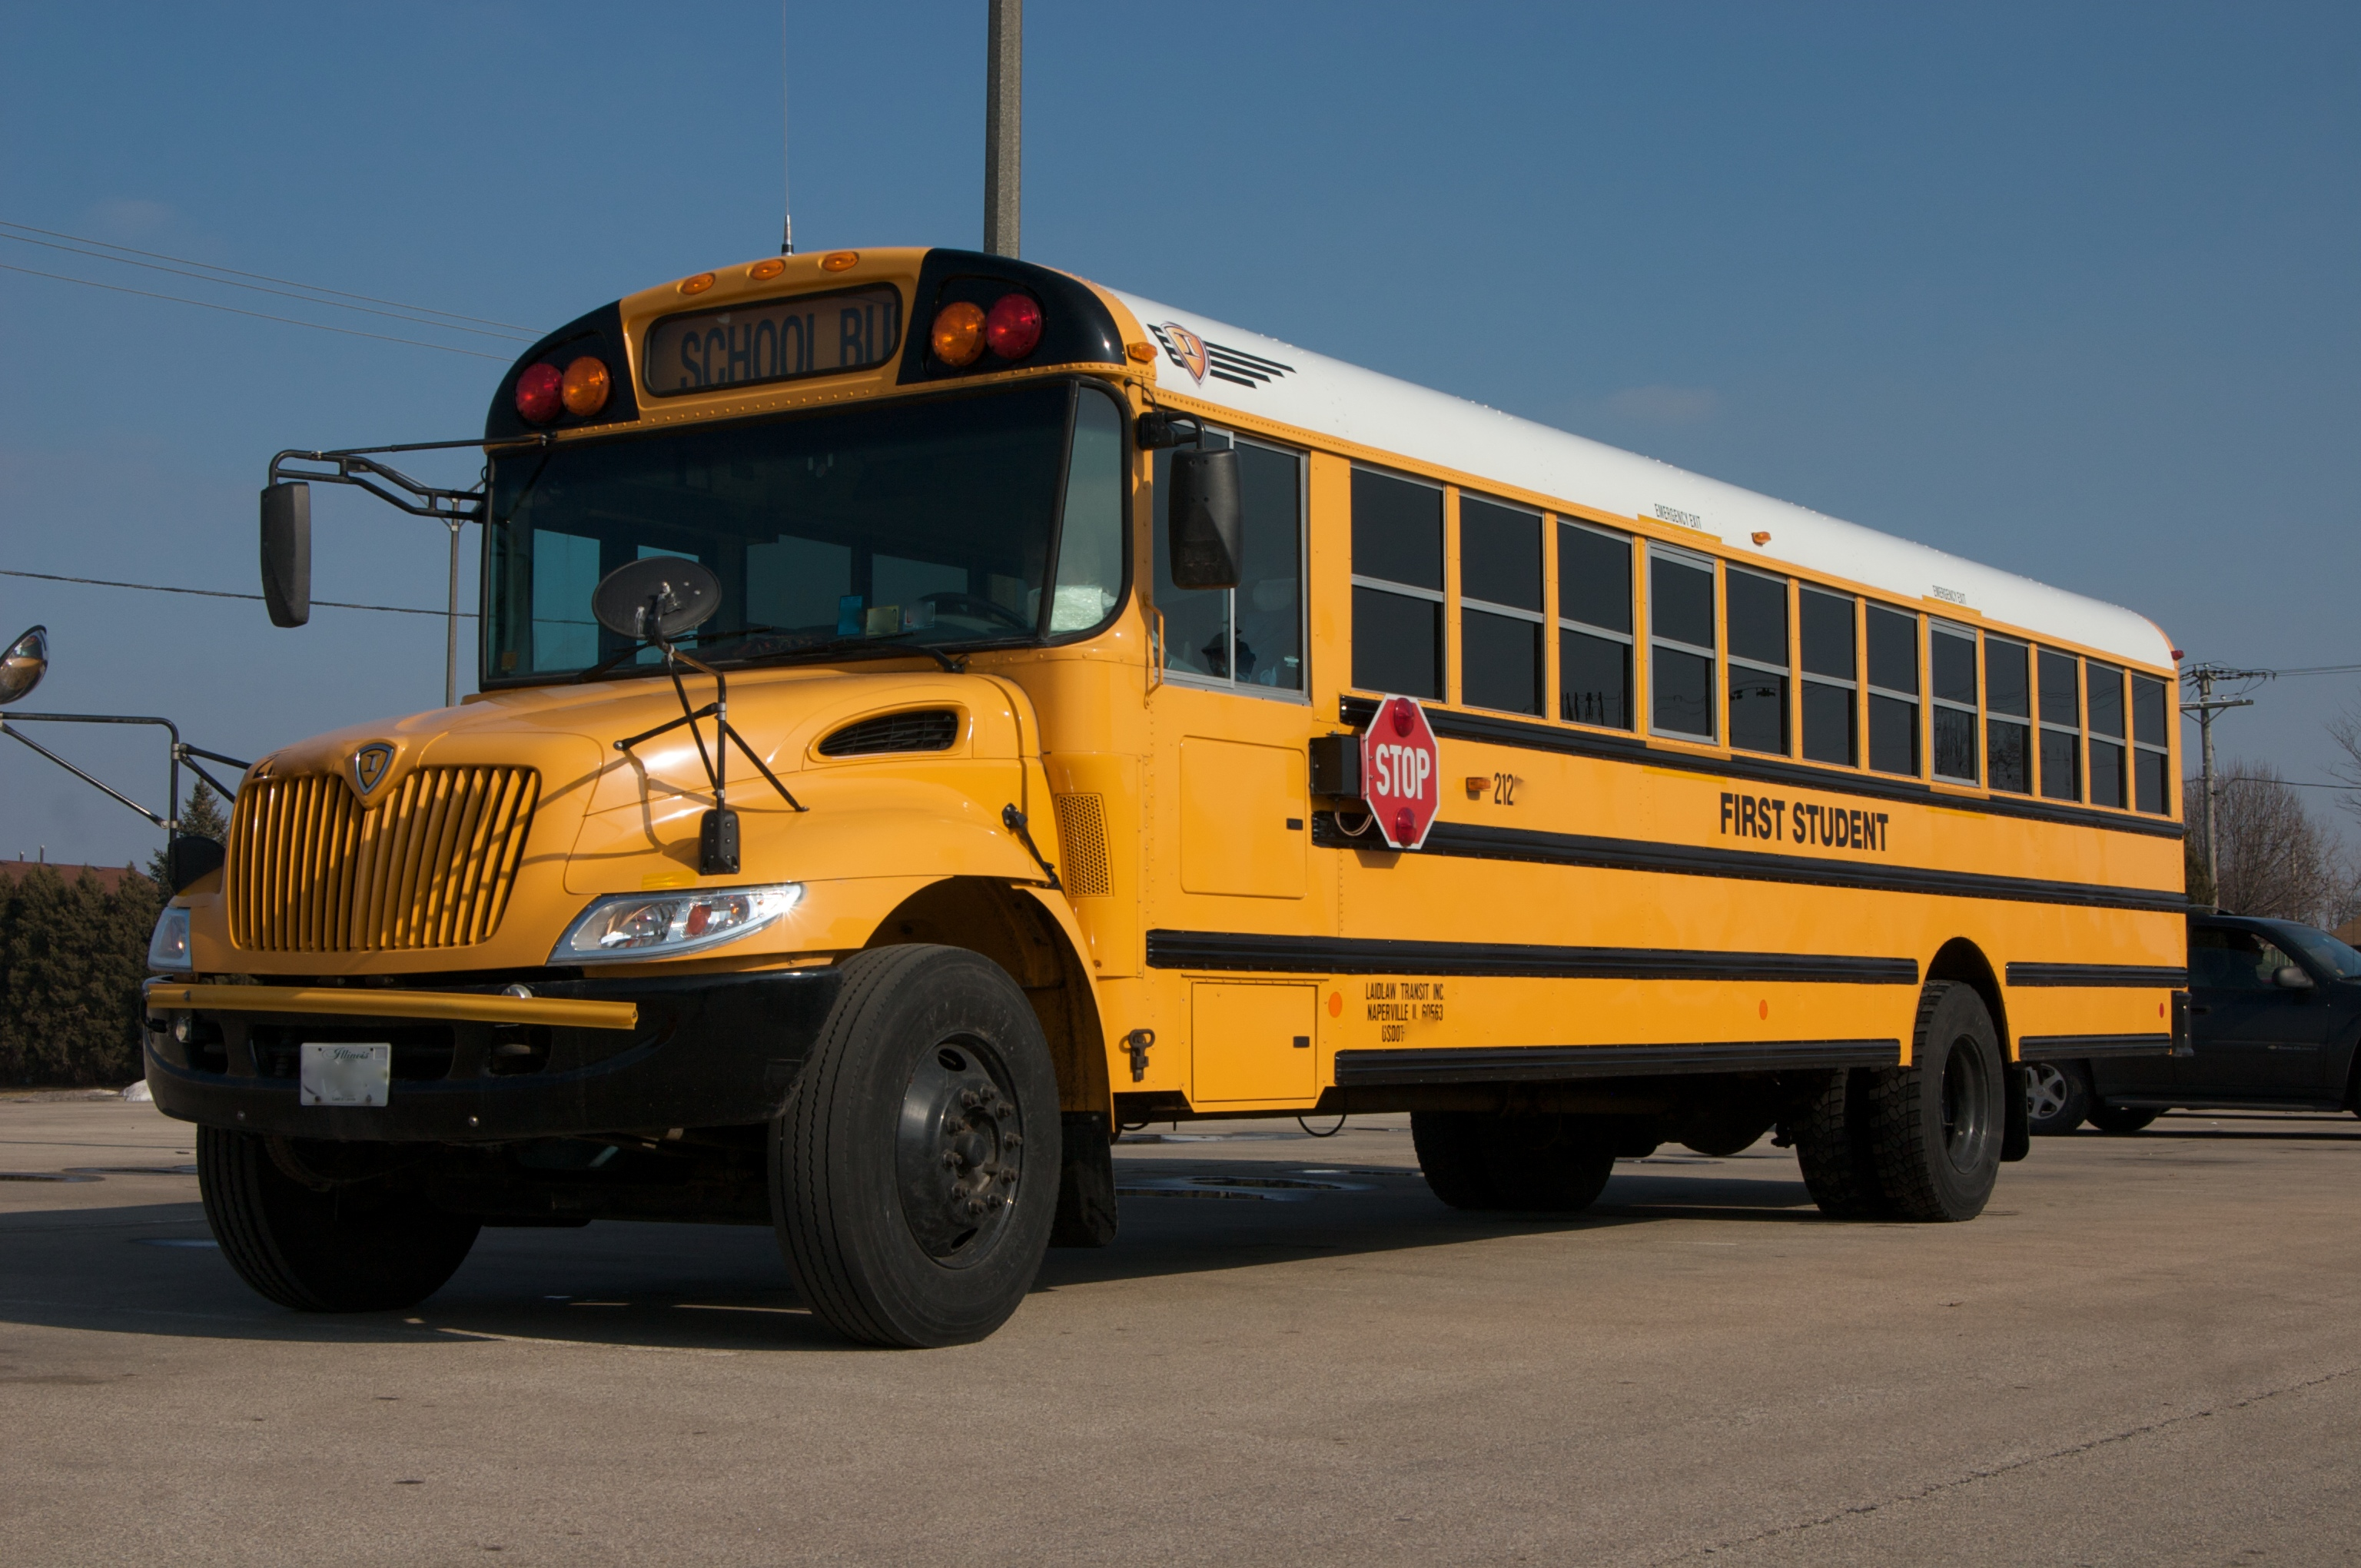 Strike by school bus drivers could impact some students in Brock